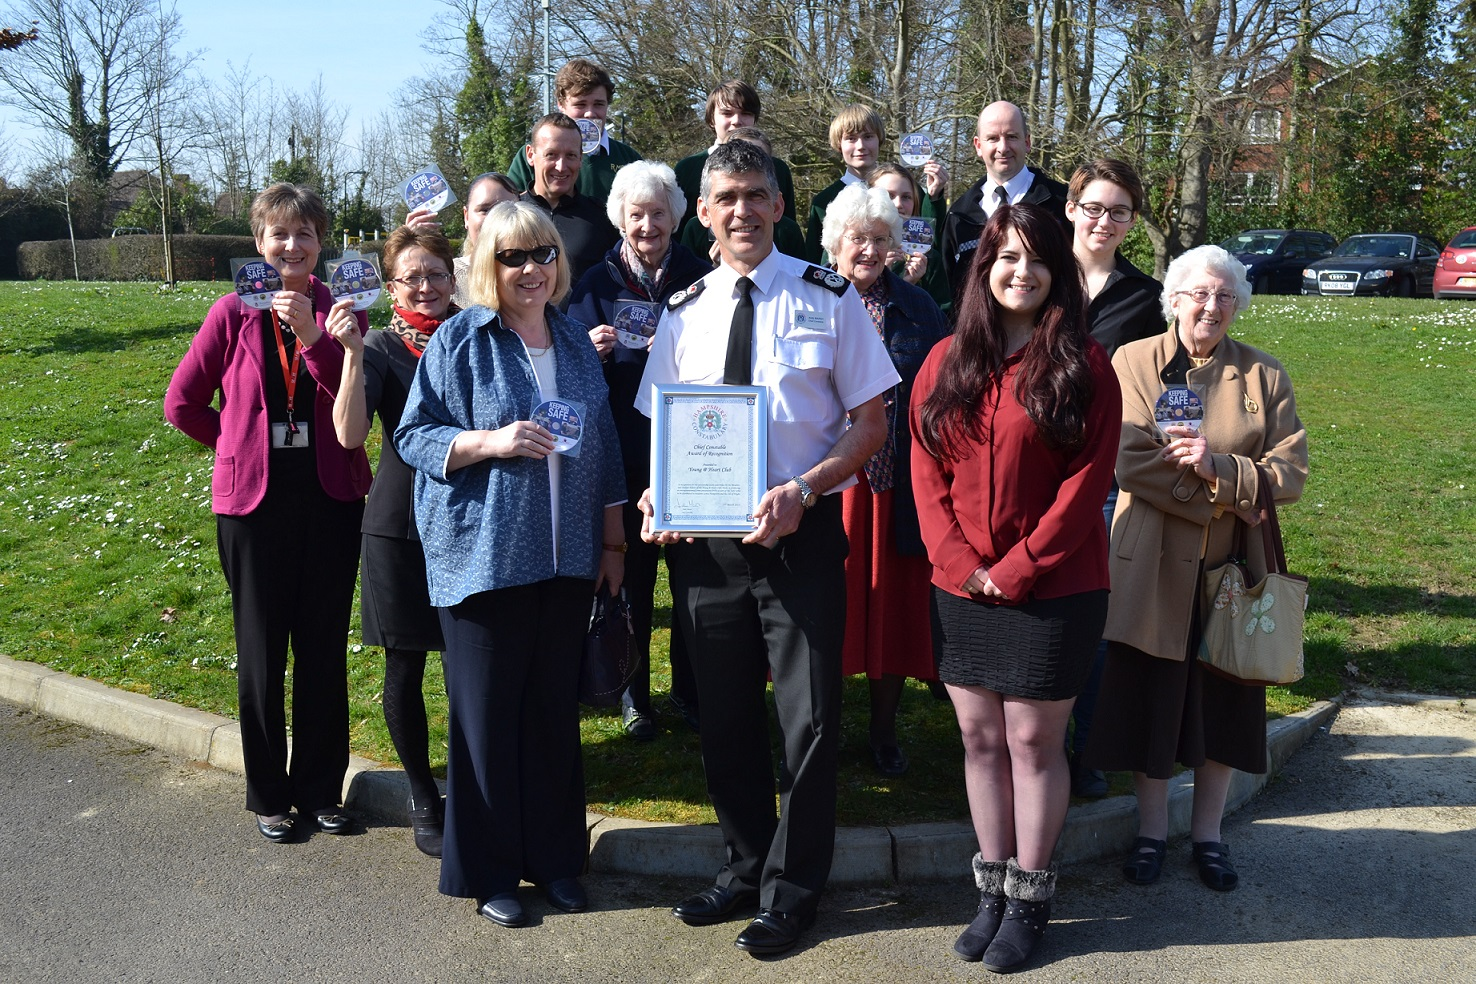 •	Cllr Liz Fairhurst, Executive Member for Adult Social Care and Public Health at Hampshire County Council (front left) and Chief Constable Andy Marsh (front centre) with the creators